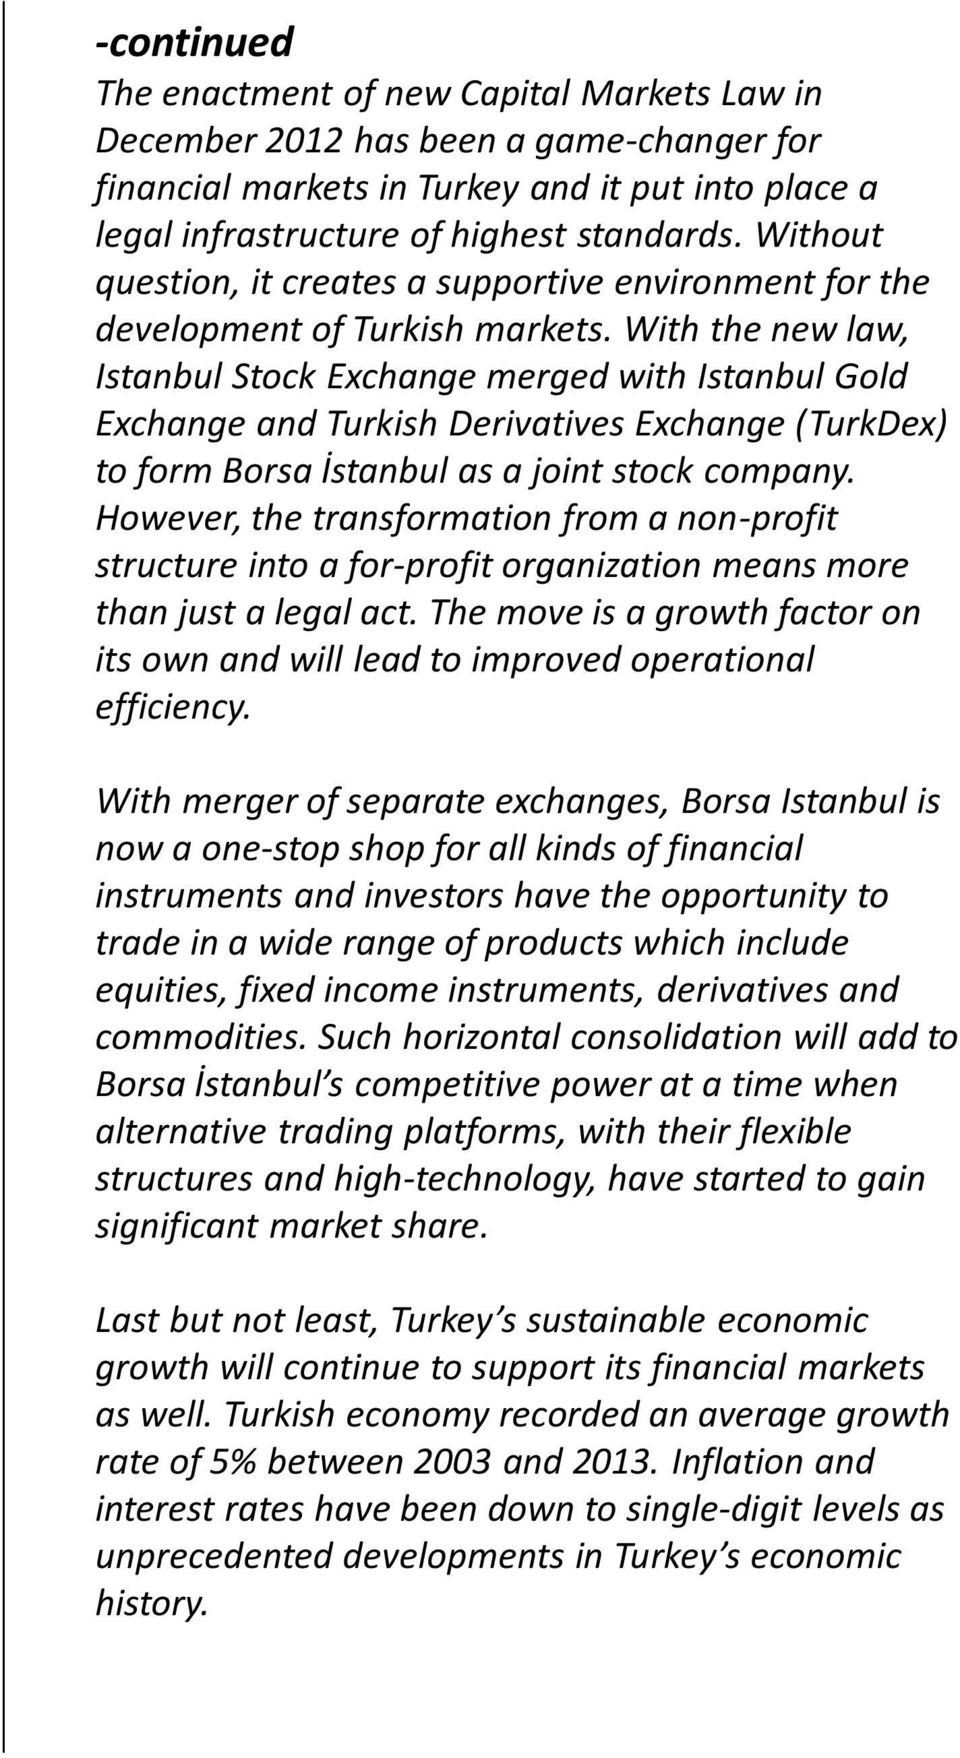 With the new law, Istanbul Stock Exchange merged with Istanbul Gold Exchange and Turkish Derivatives Exchange (TurkDex) to form Borsa İstanbul as a joint stock company.